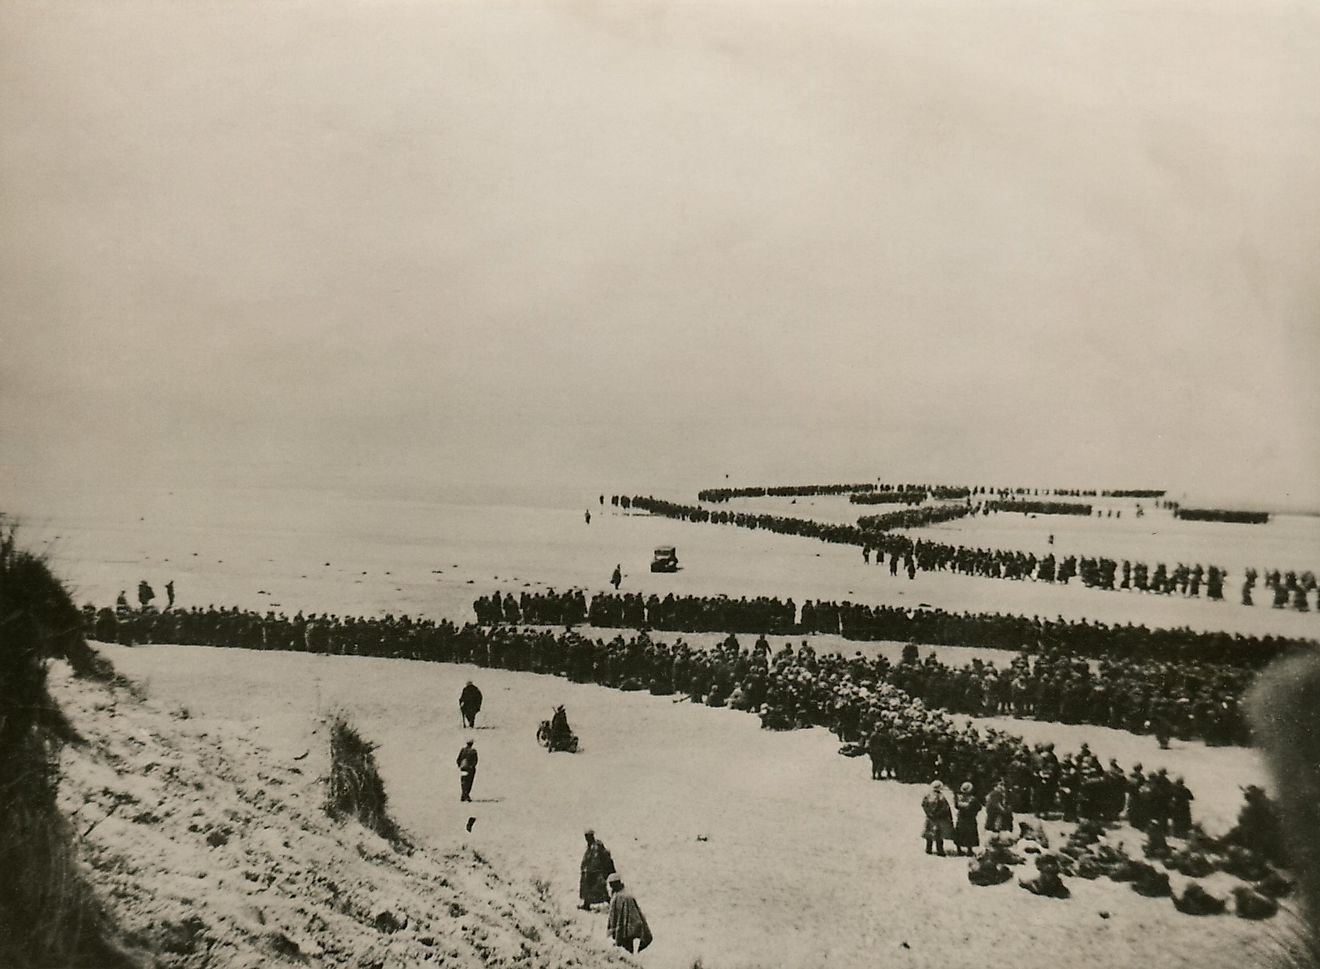 Military evacuation of Dunkirk during World War 2. Thousands of British and French troops wait on the dunes of Dunkirk beach for transport to England.